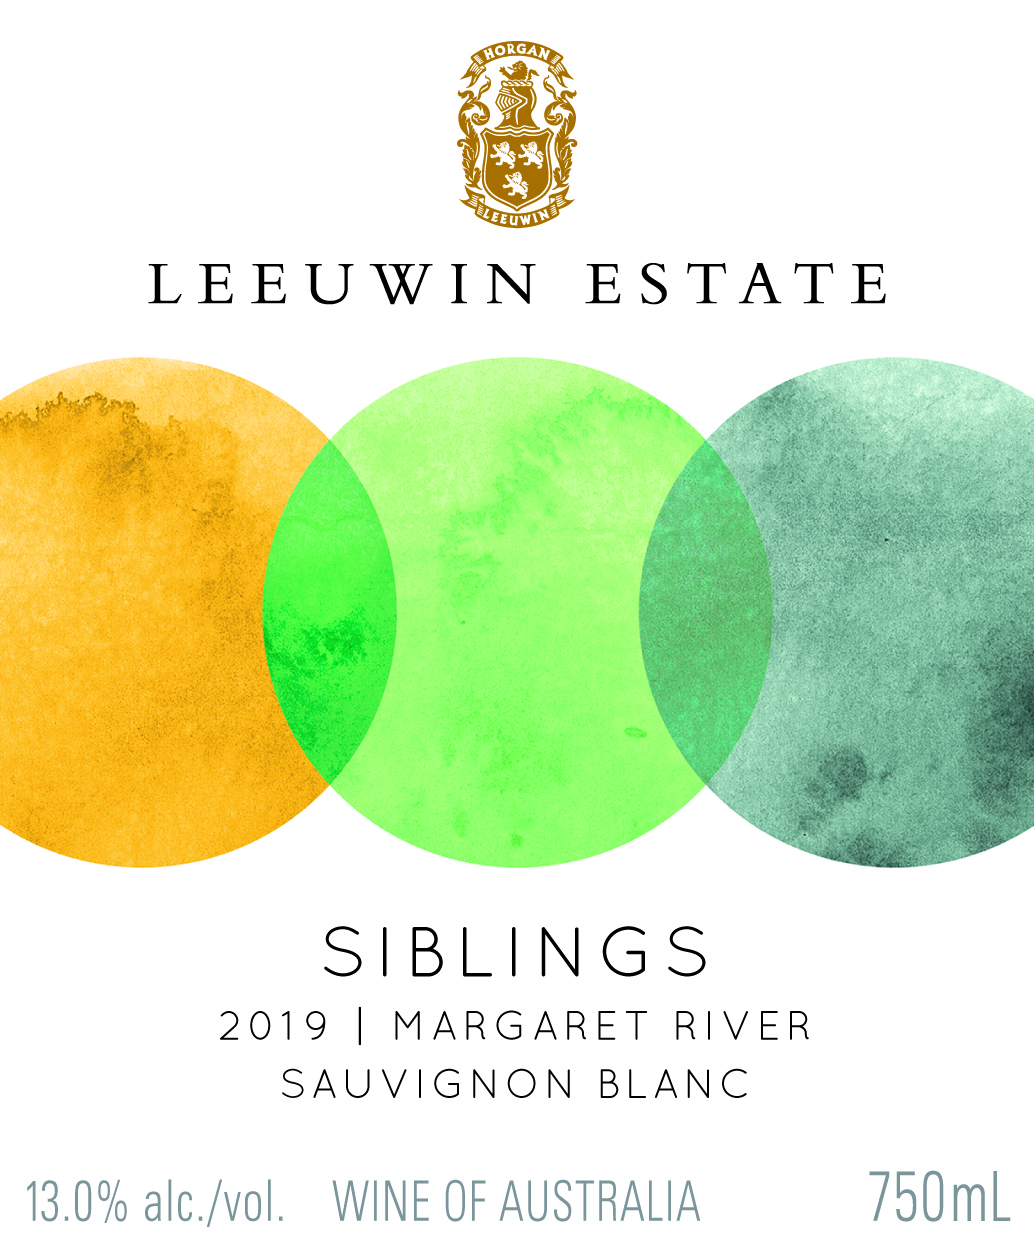 Leeuwin Estate Siblings Sauvignon Blanc Semillon 2019 THUMBNAIL